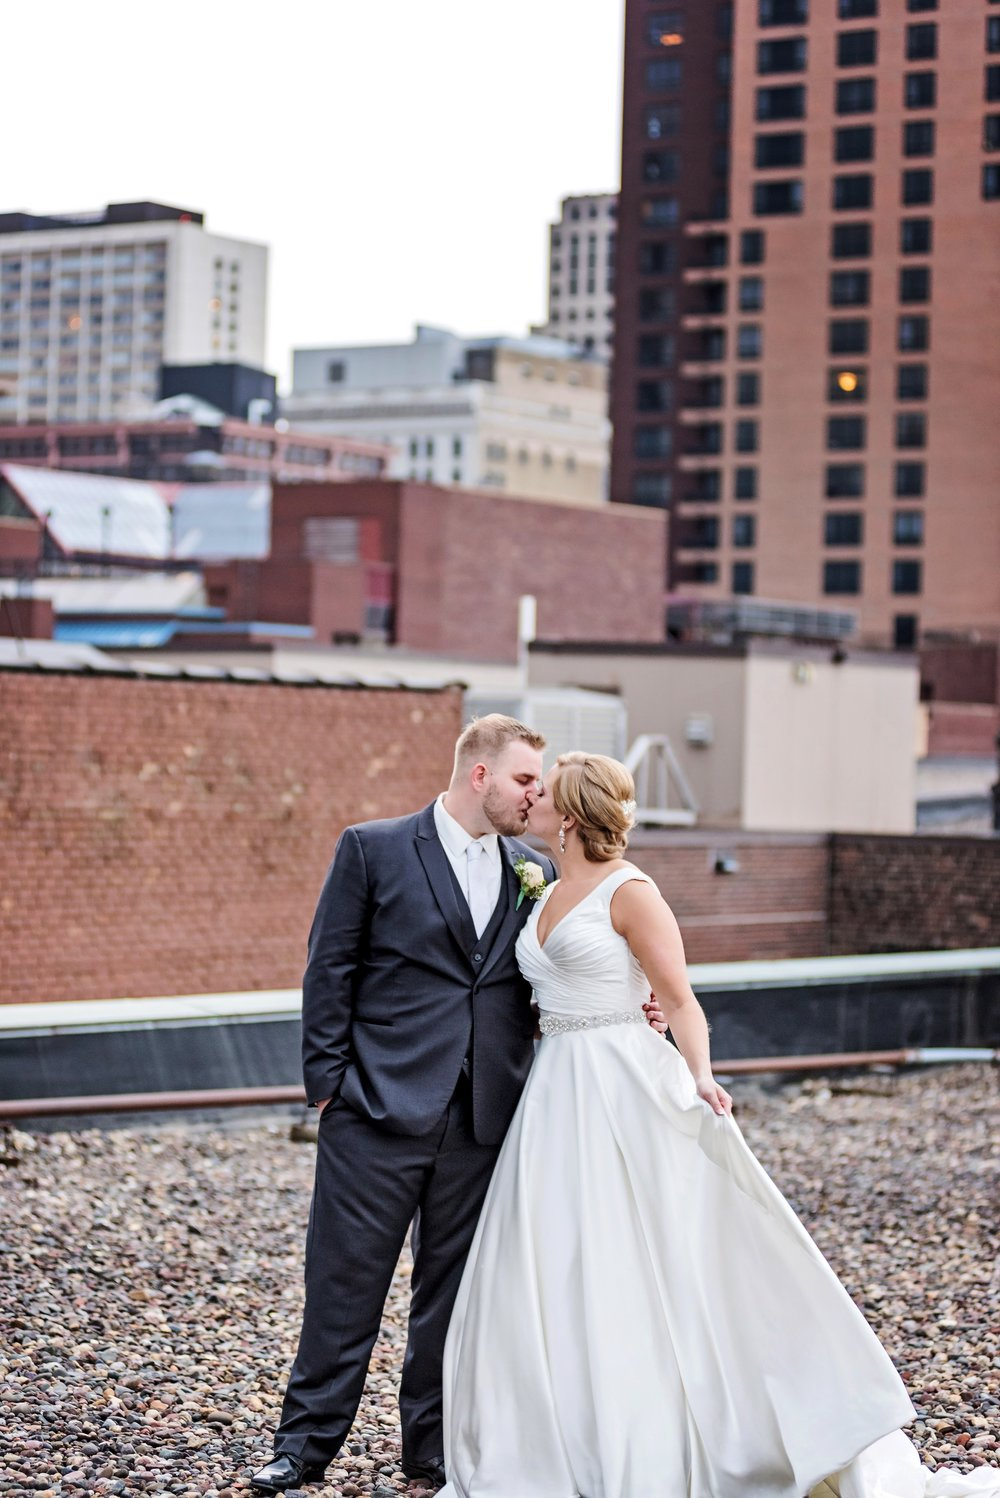 2018-Real-Wedding-Megan-Brenden-Rotella-Photography_0496.jpg